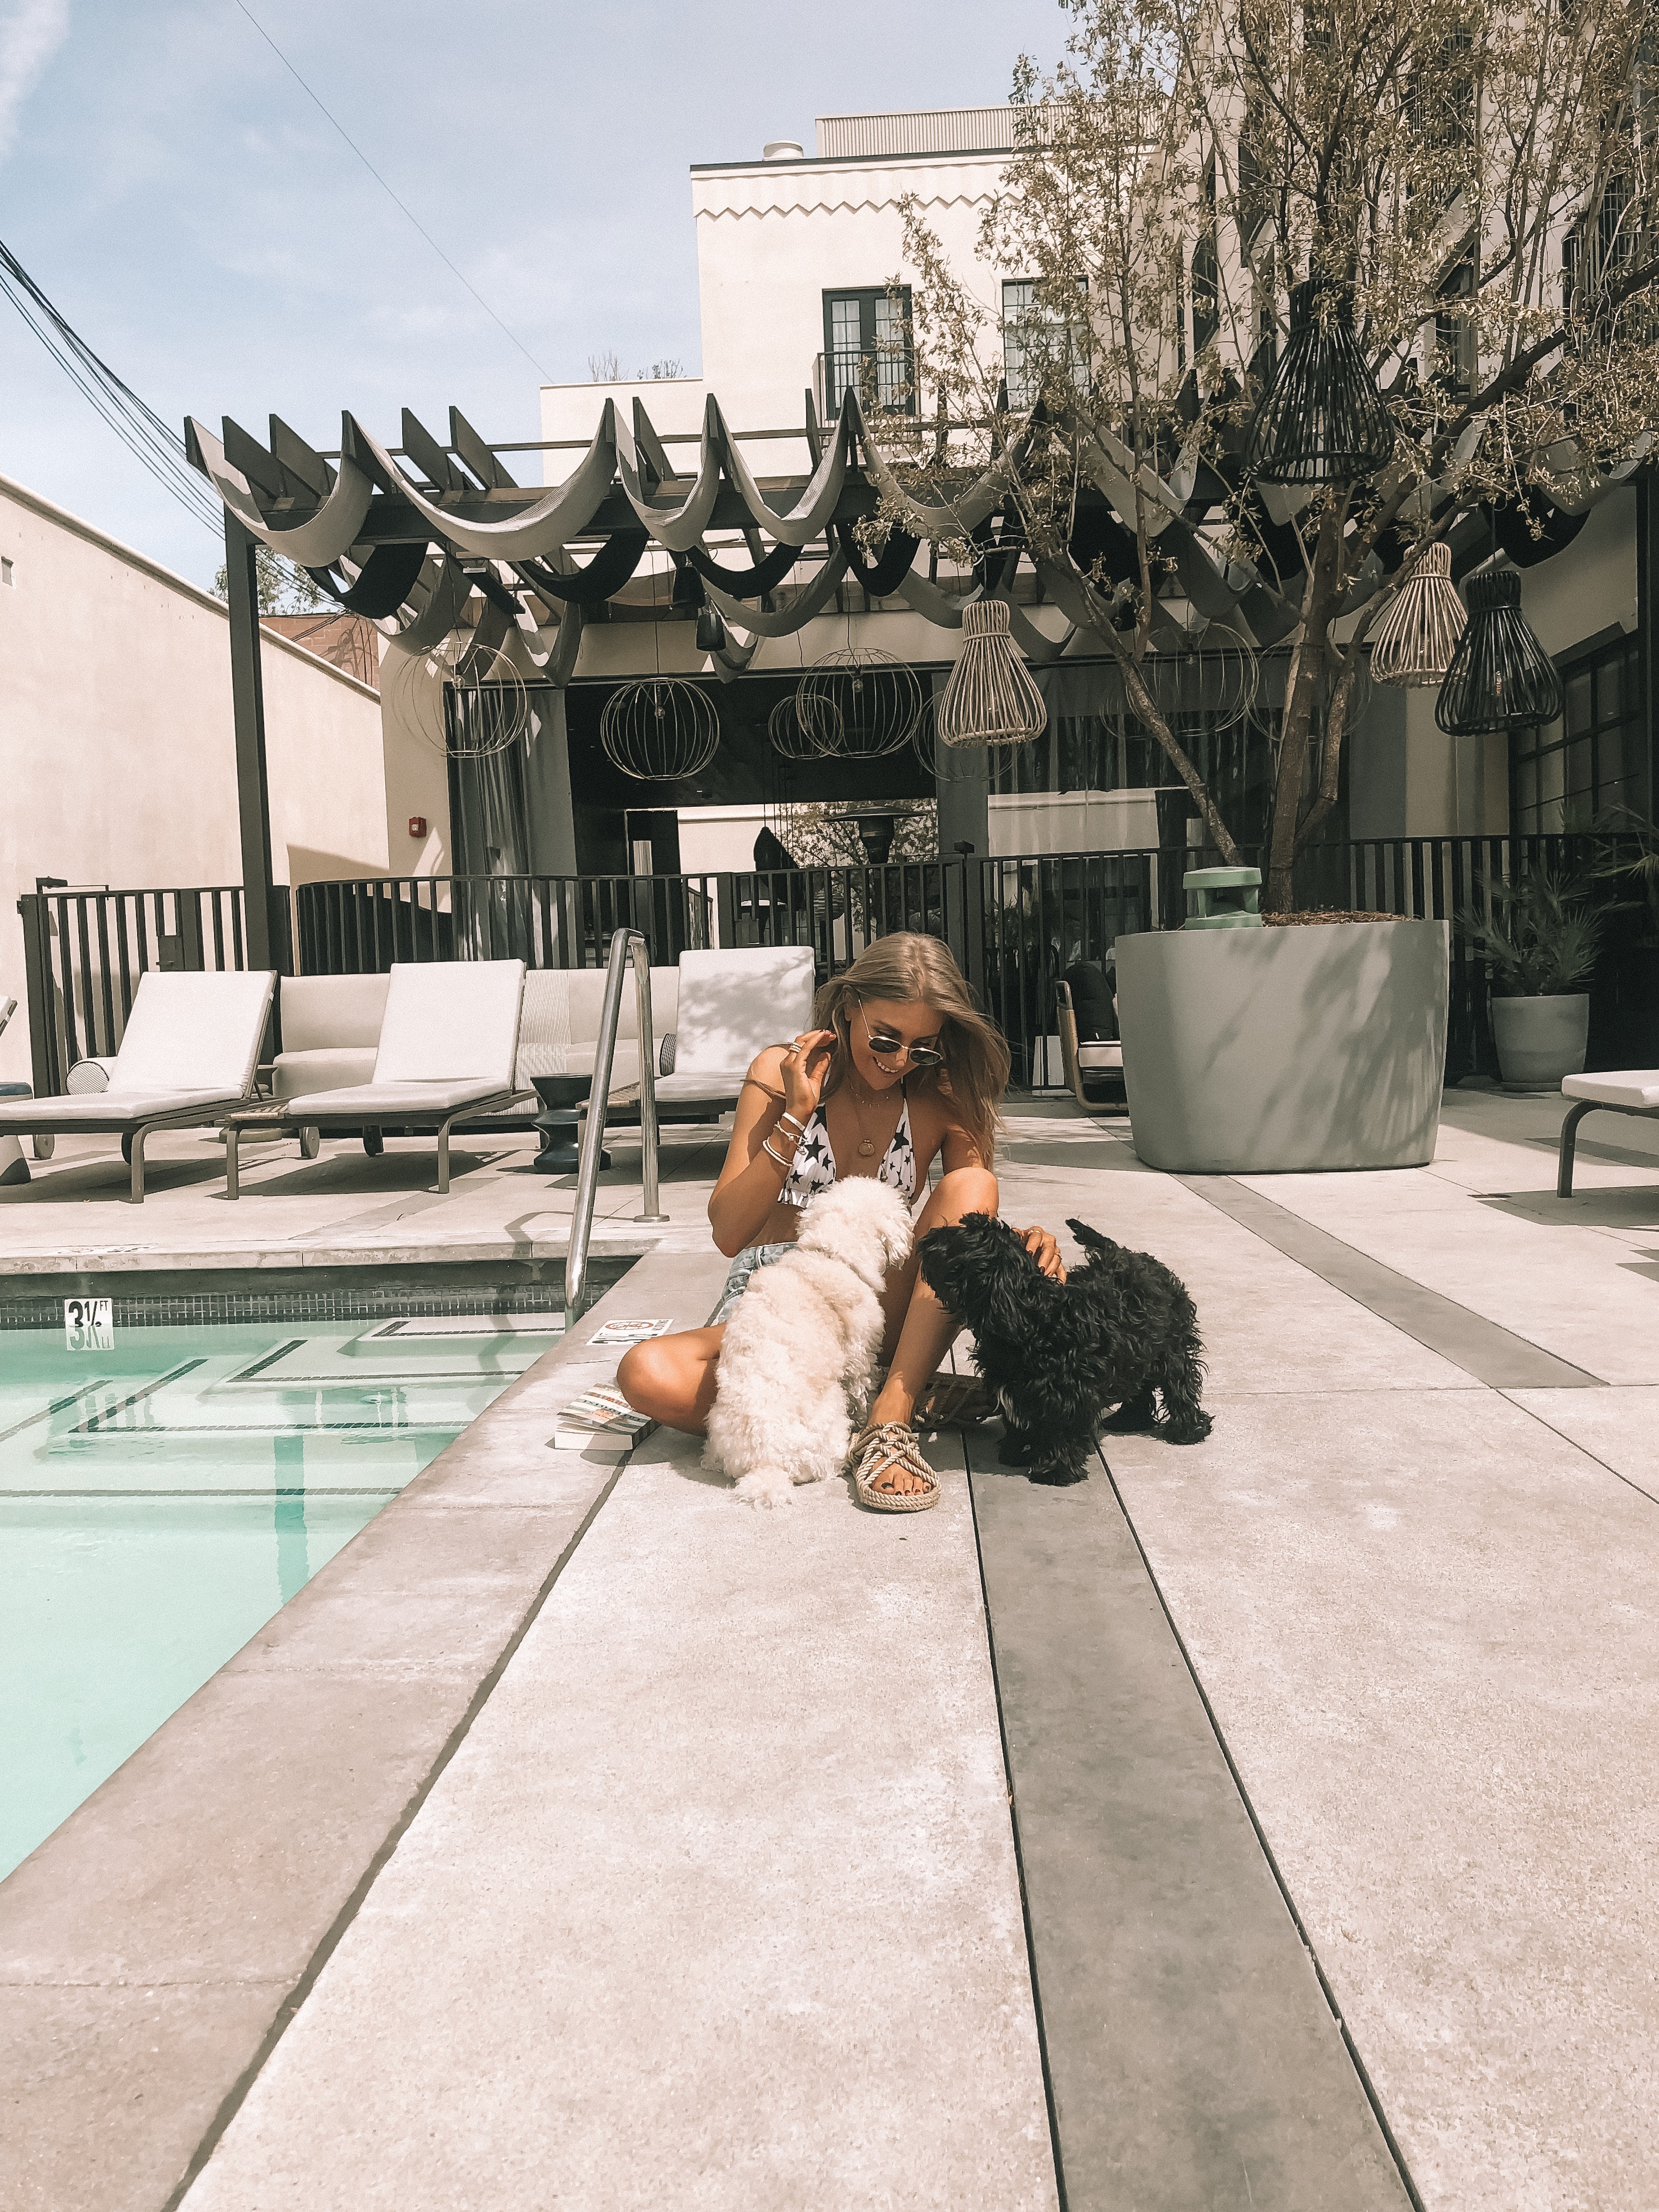 Playing with Puppies by the pool in west hollywood at the Kimpton La Peer Hotel